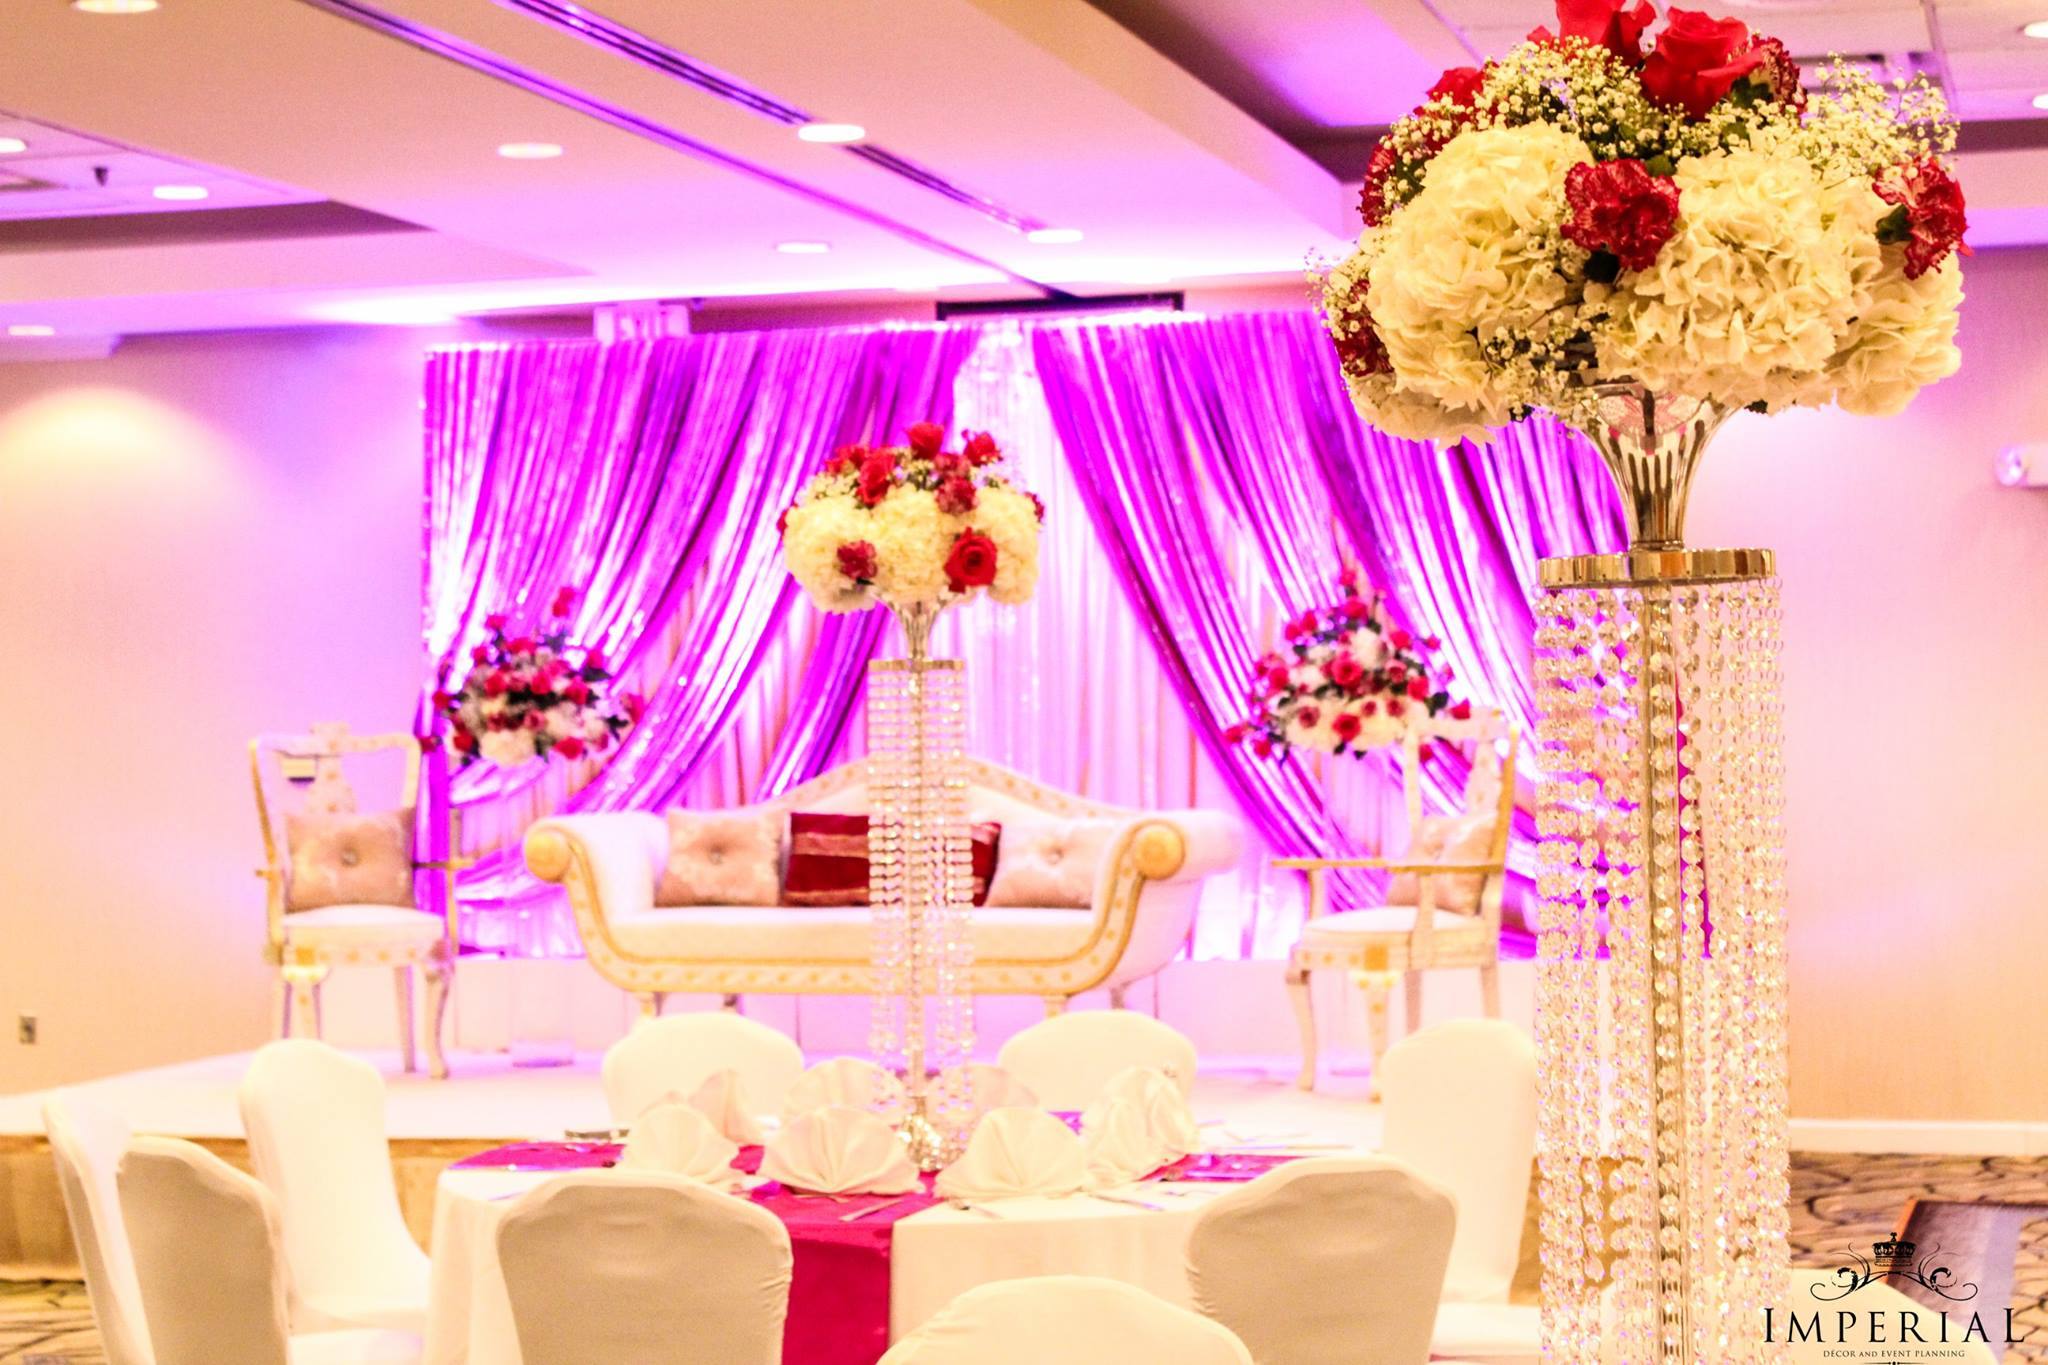 Imperial Decorations - Indian Wedding Floral Hall Decorations.jpg